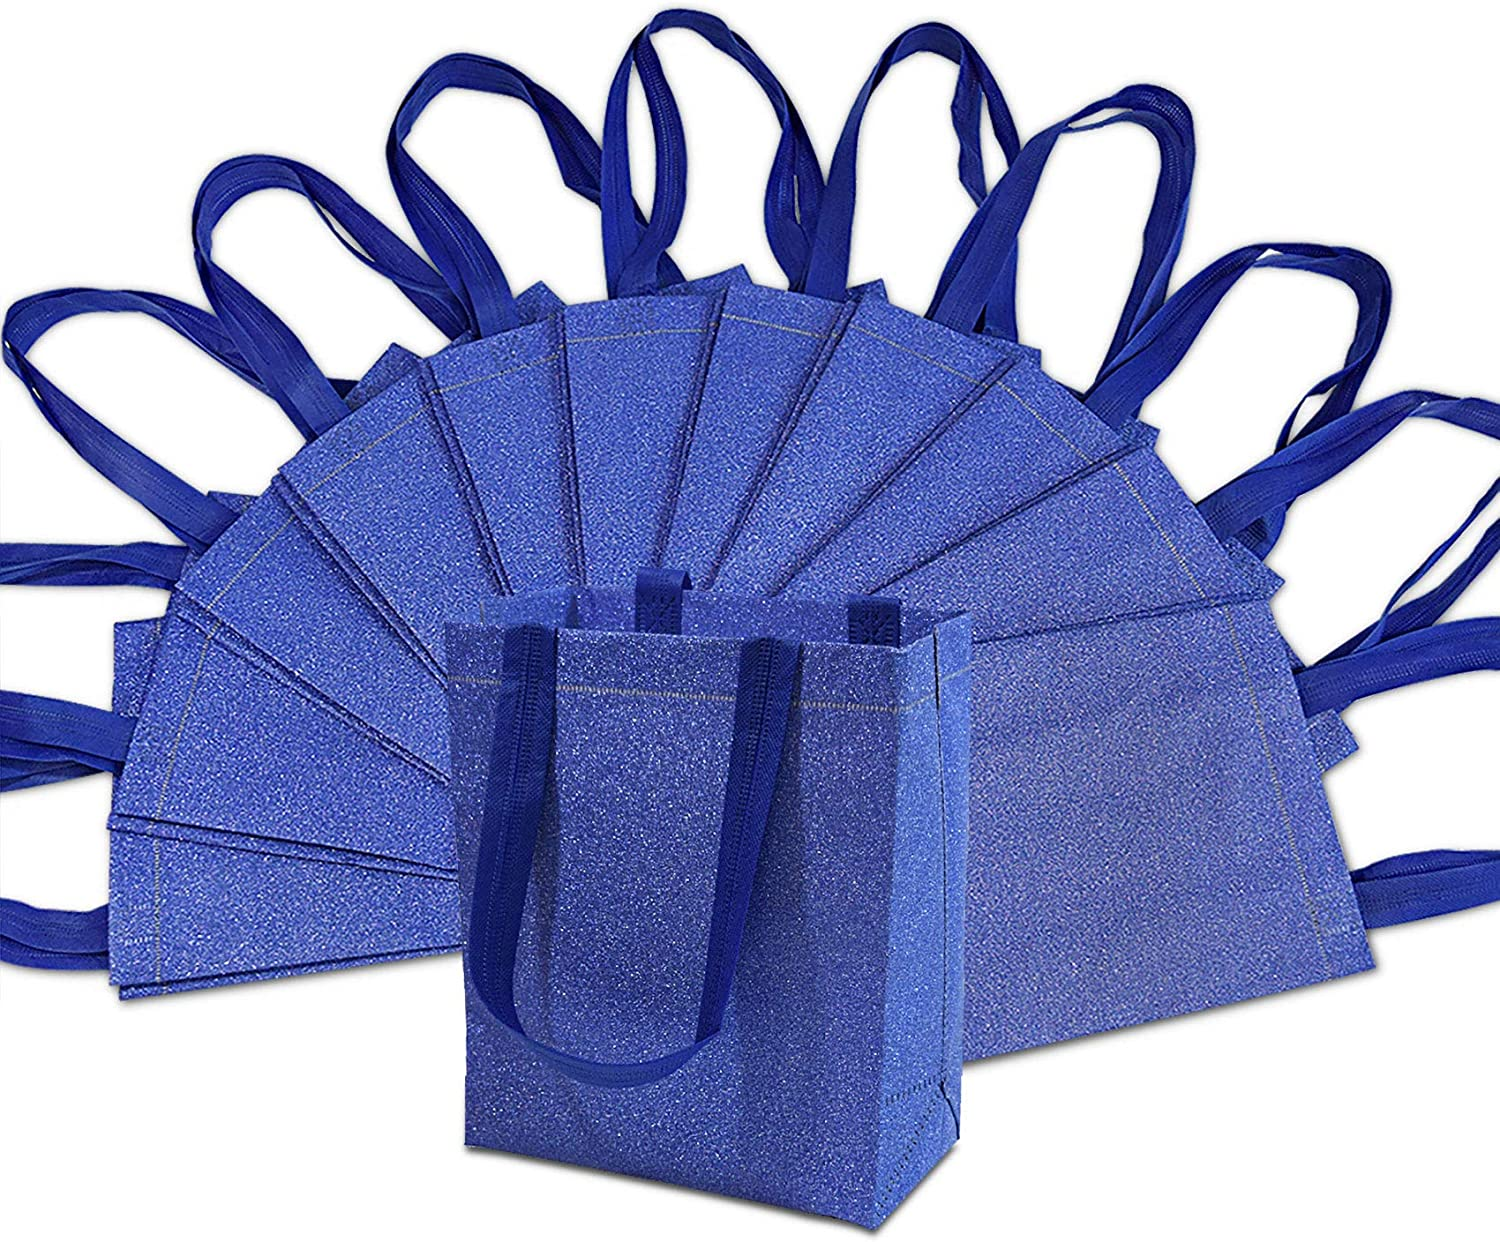 Medium-Small Metallic Blue Reusable Glitter Gift Bags with Handles, Birthday Party Favor Bags Bags for Weddings, Holidays and All Occasions 12 Pcs. 8x4x10